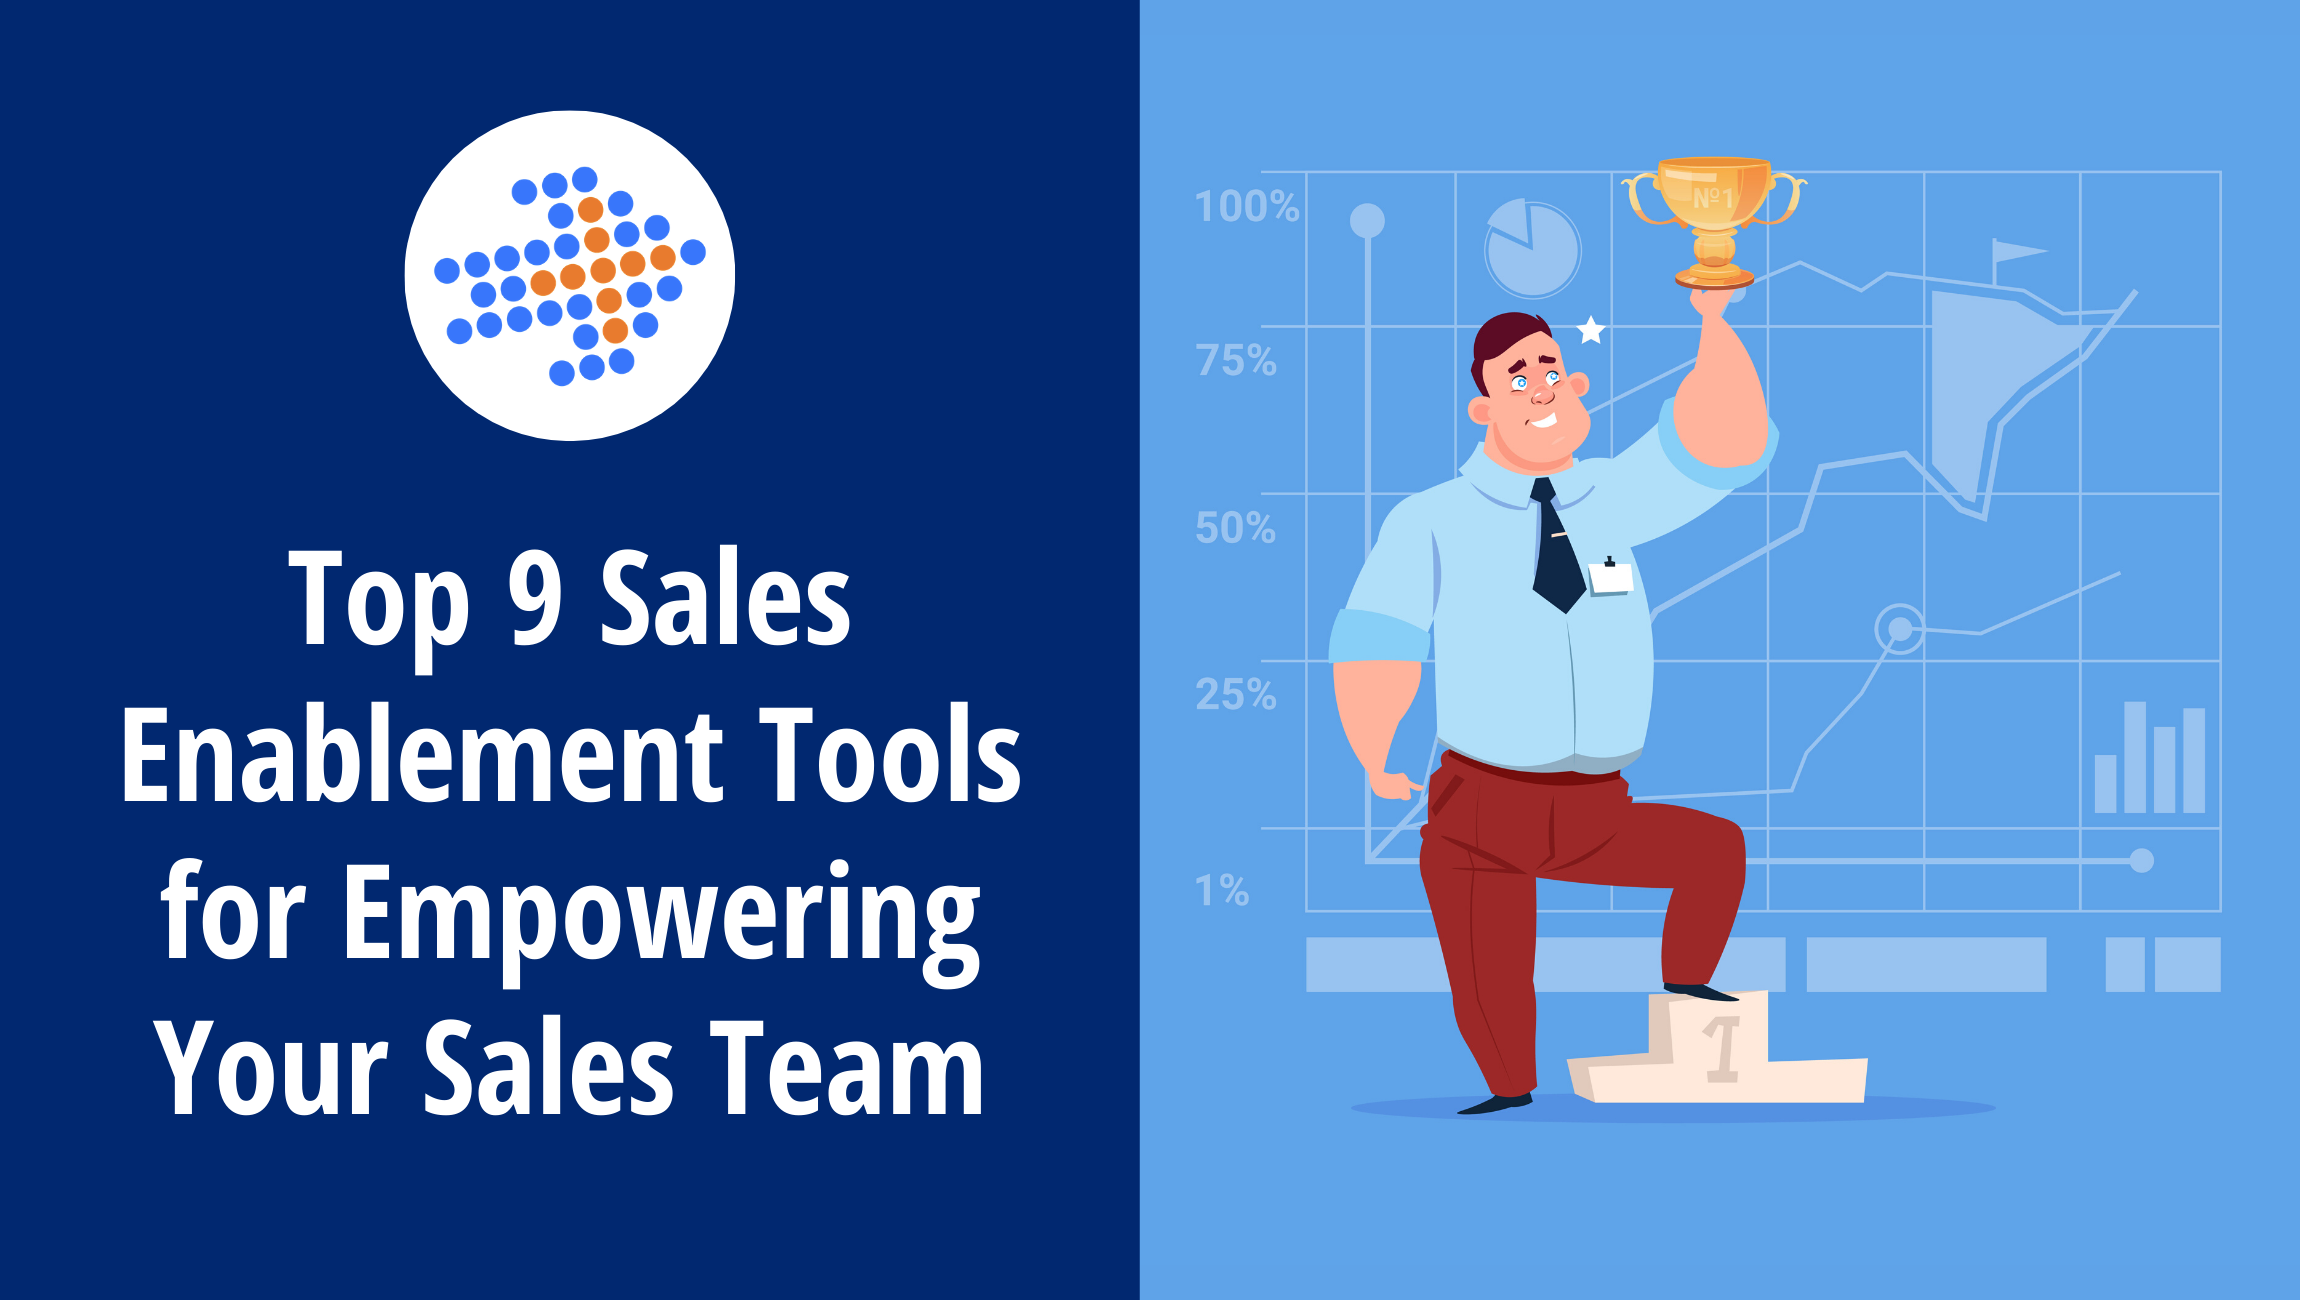 Top 9 Sales Enablement Tools for Empowering Your Sales Team